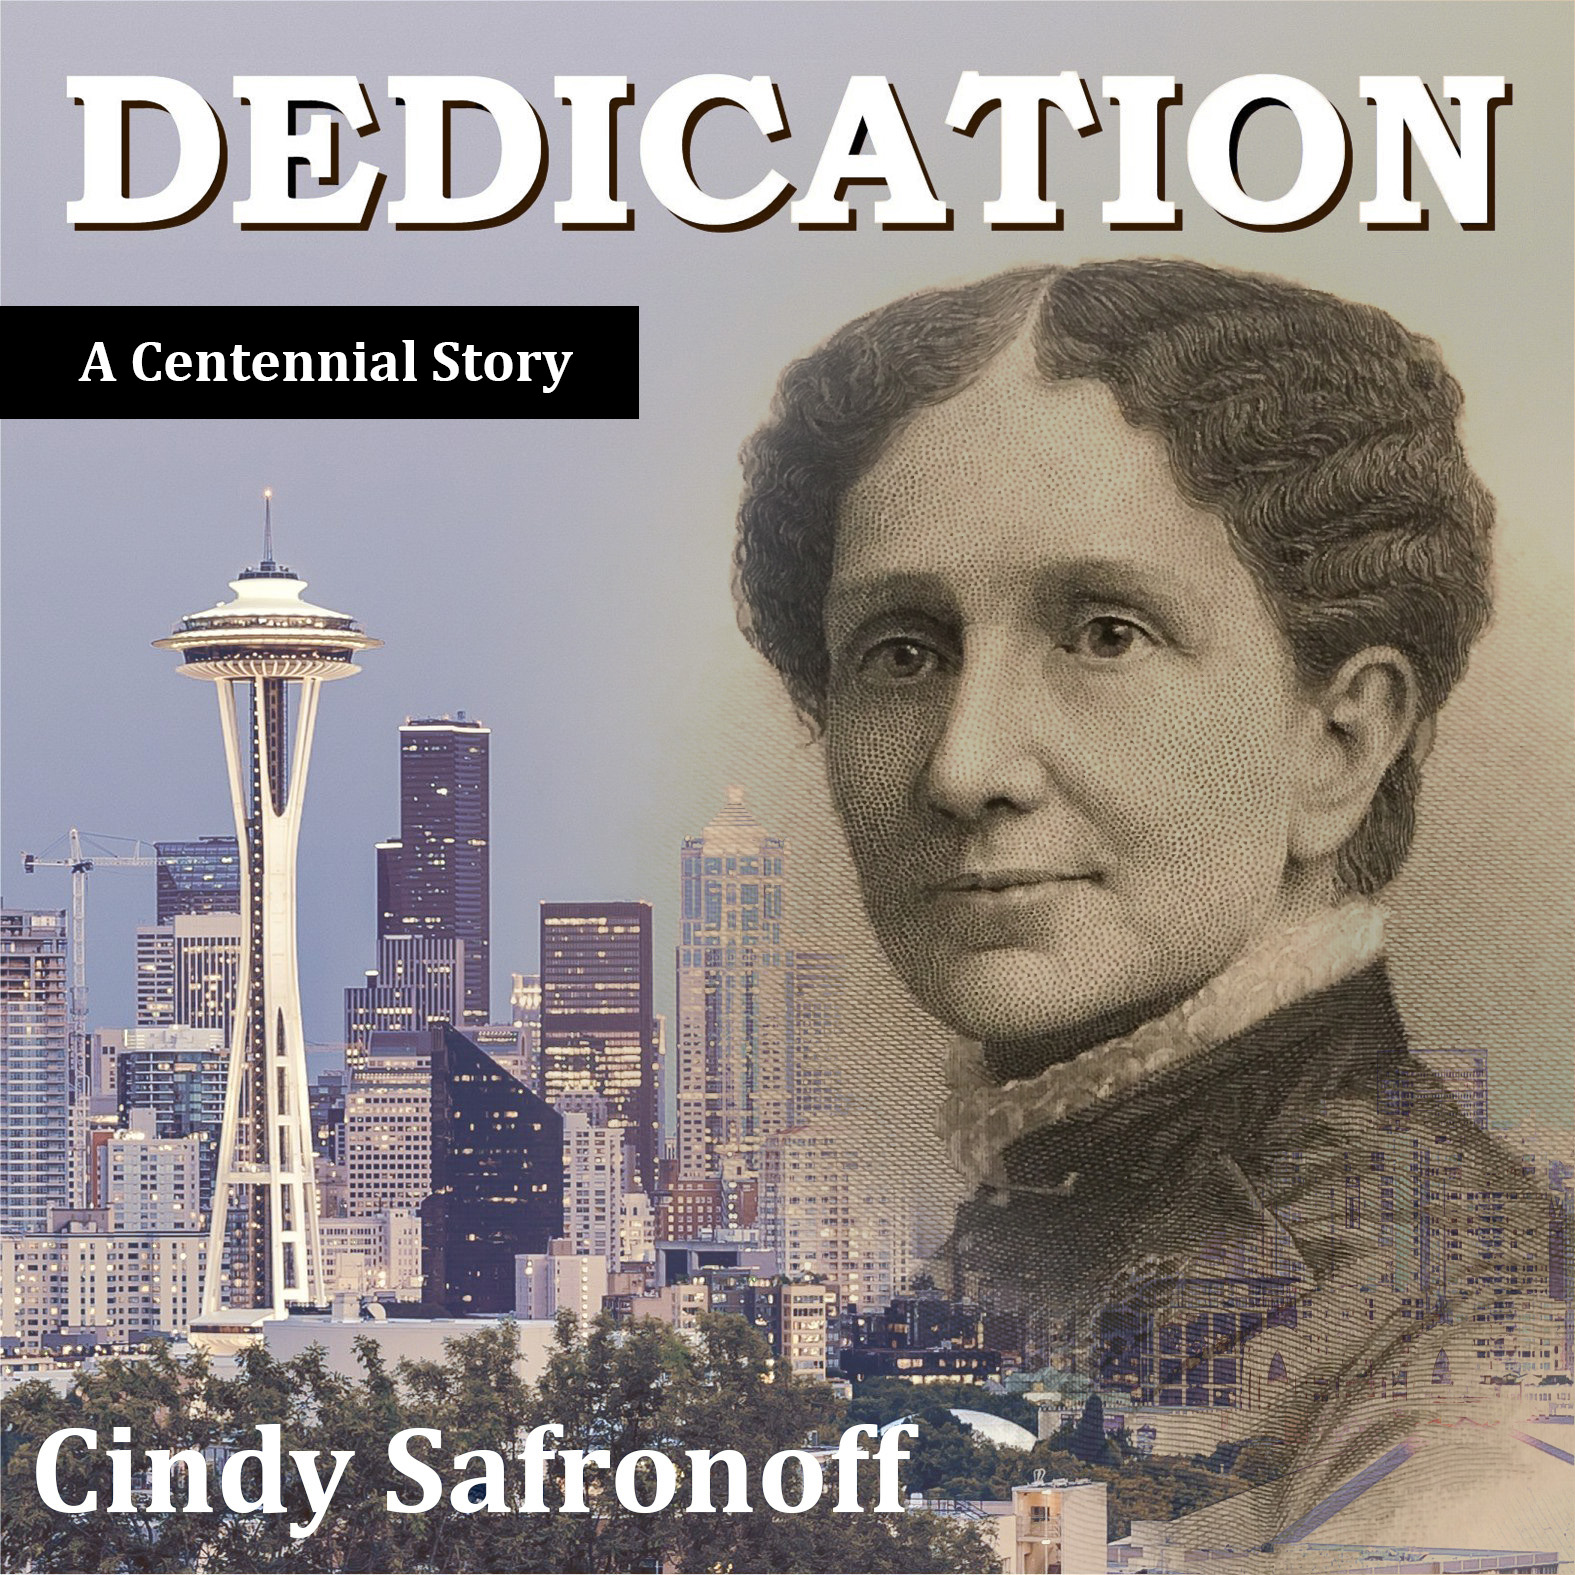 Dedication: A Centennial Story